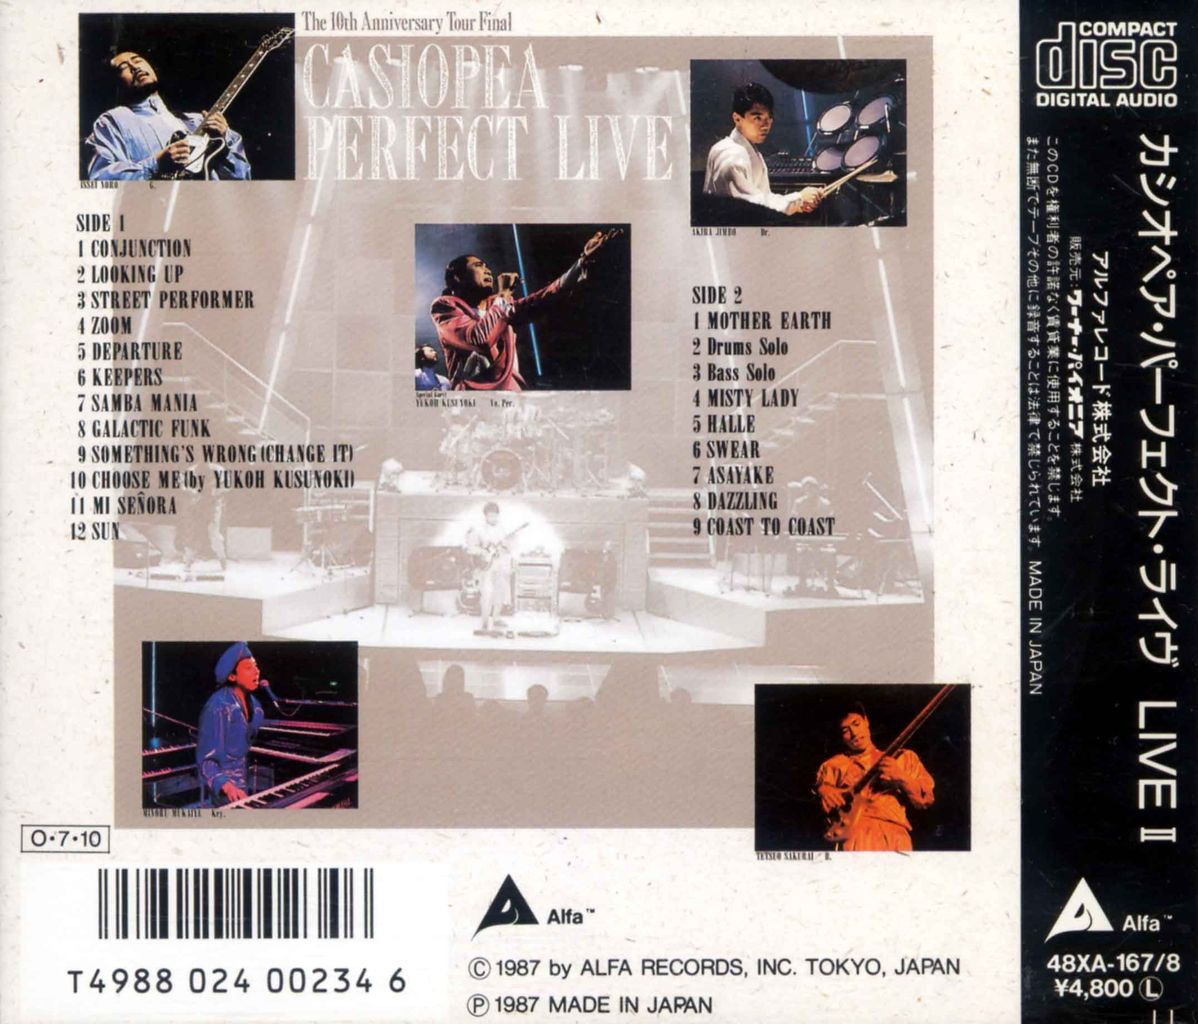 CASIOPEA PERFECT LIVE LIVEII-2